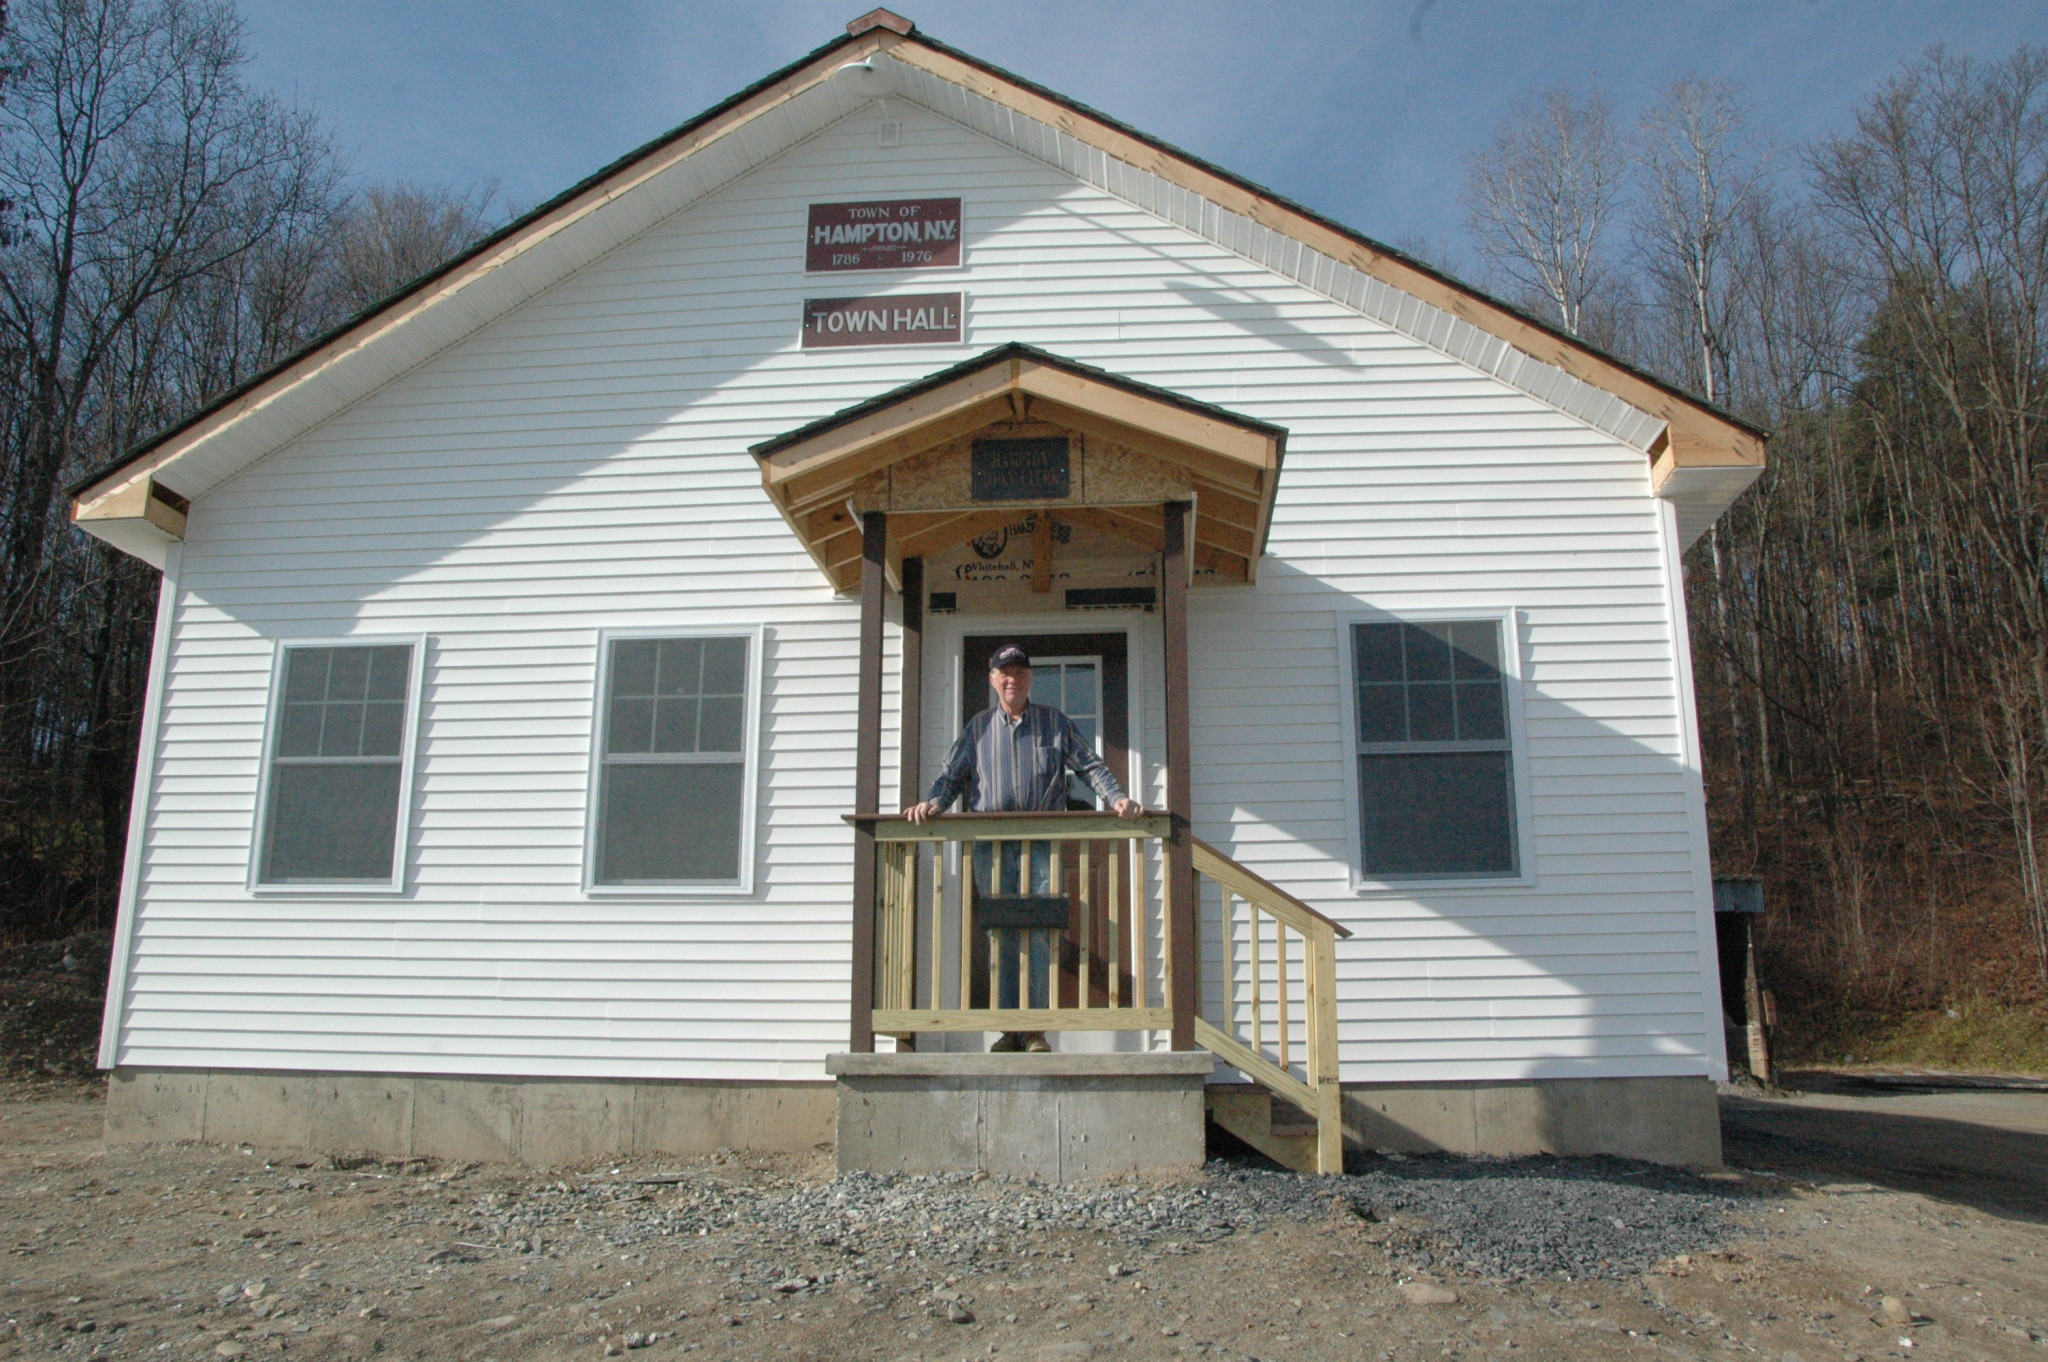 Community comes together on new town hall